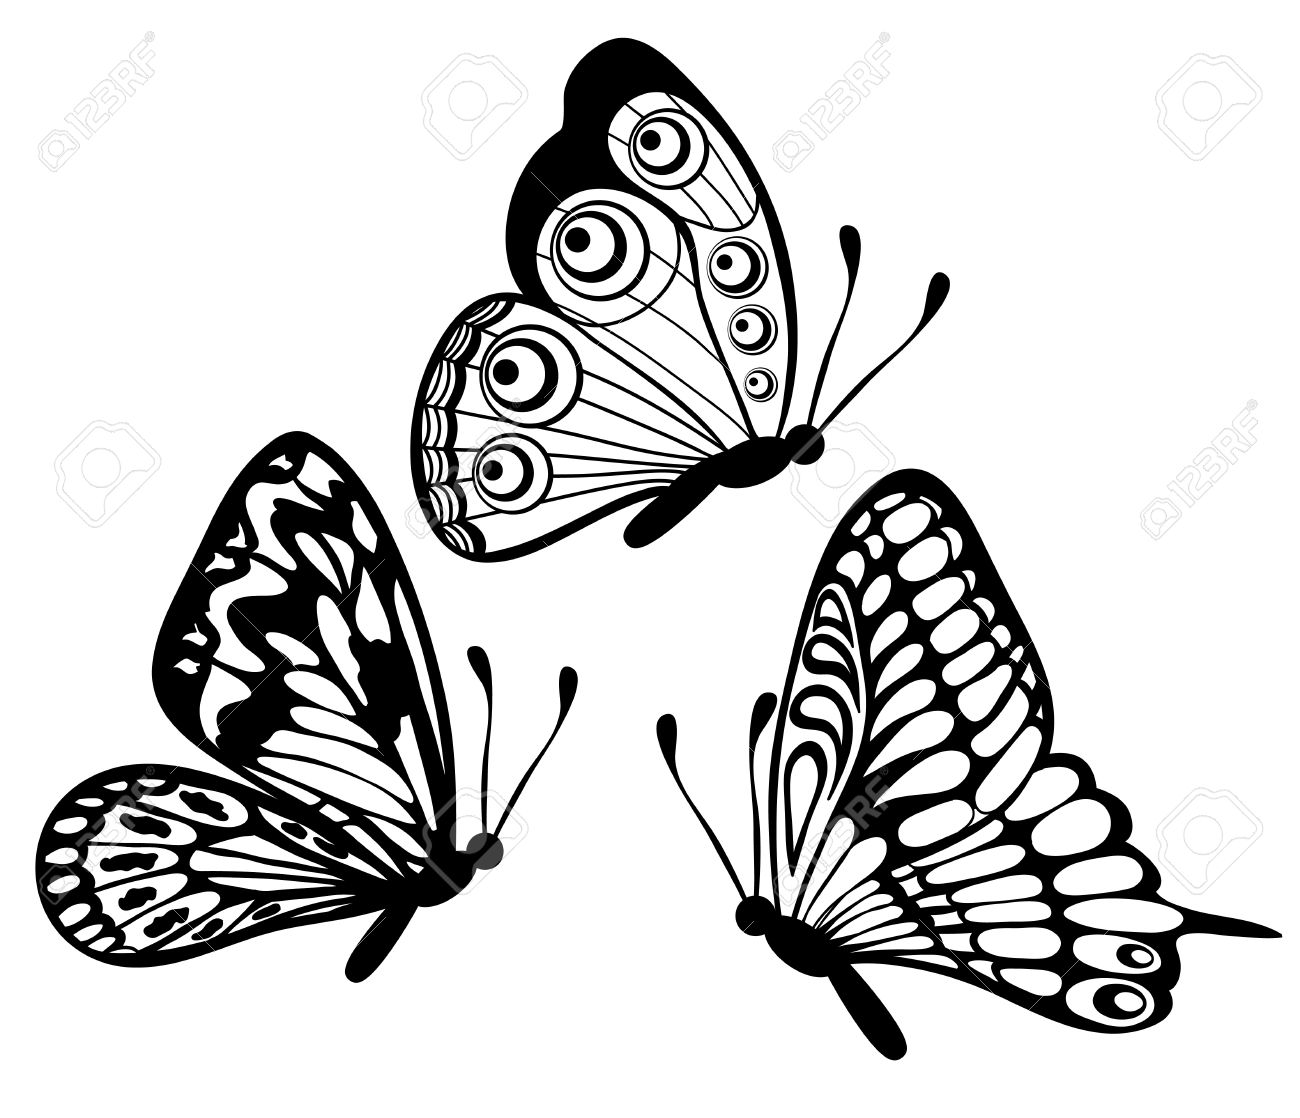 Butterfly In Hand Clipart Black And White.